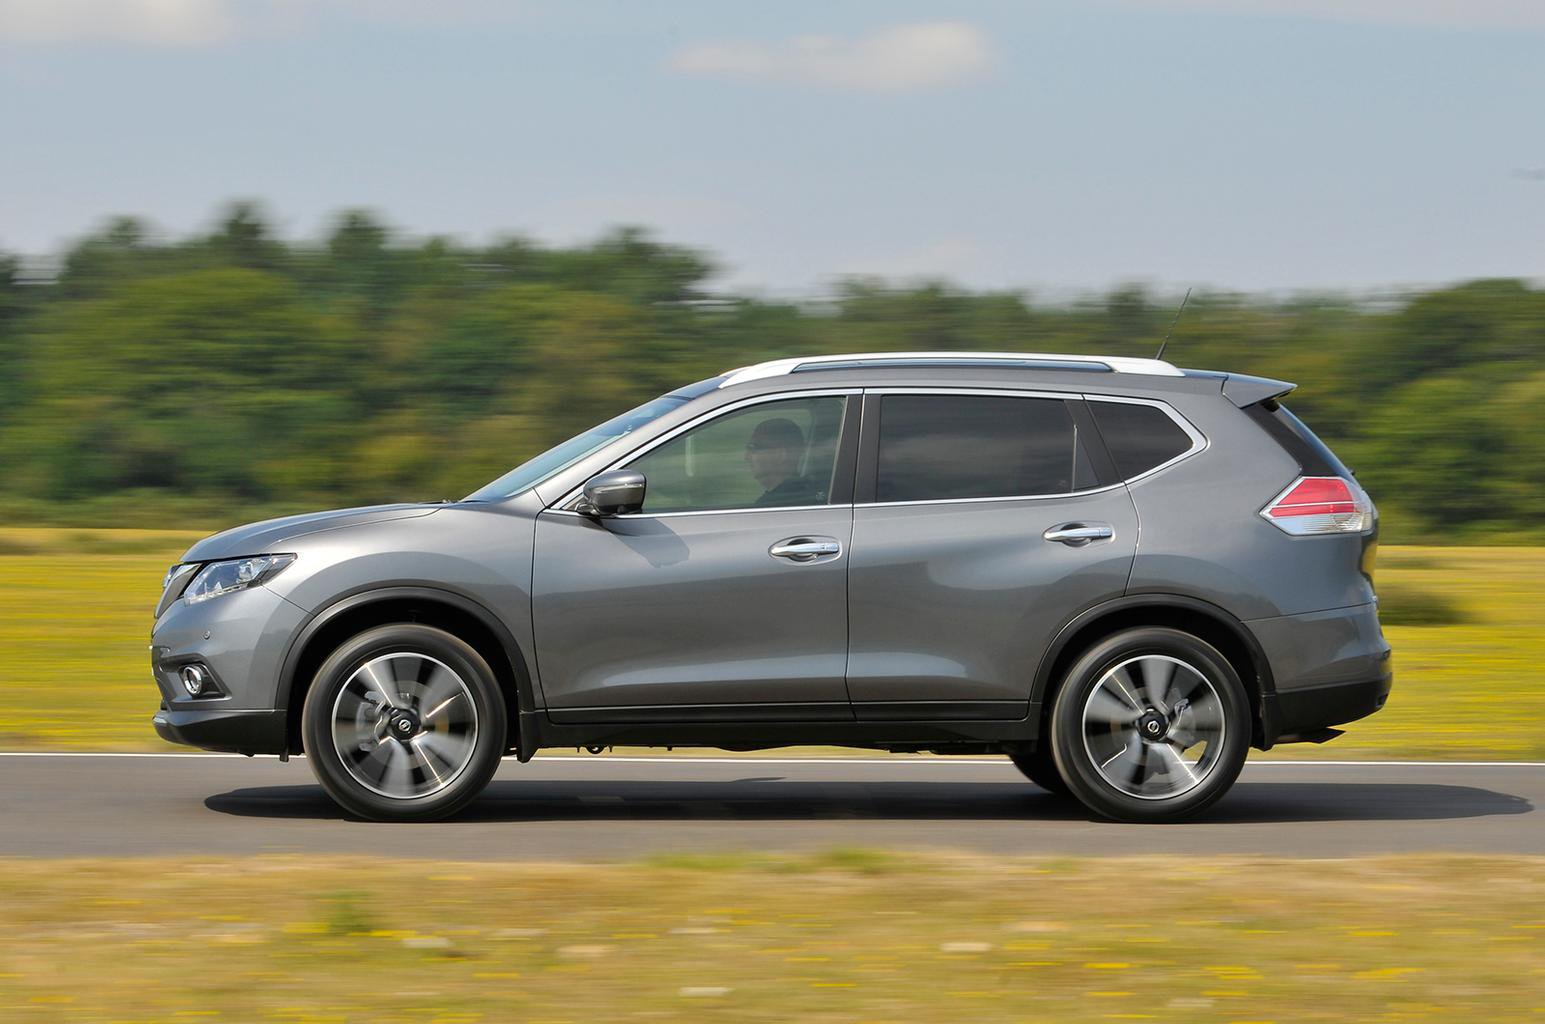 Used Nissan X-Trail (14-present)